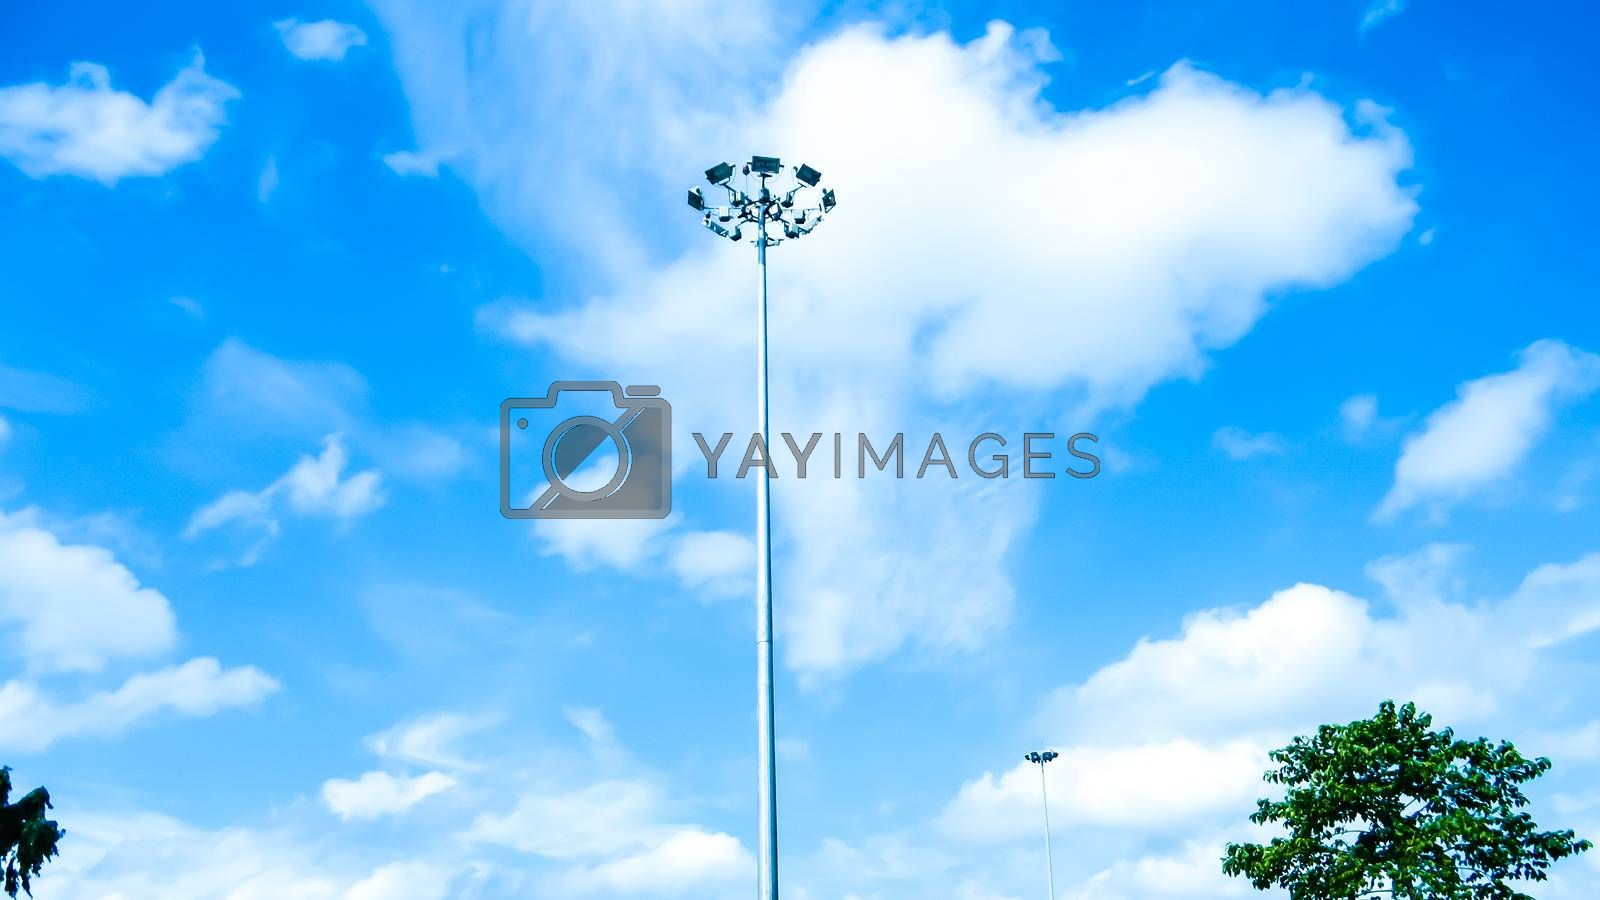 Street Public lighting pole against a blue sky and cloud background. by SB Stock